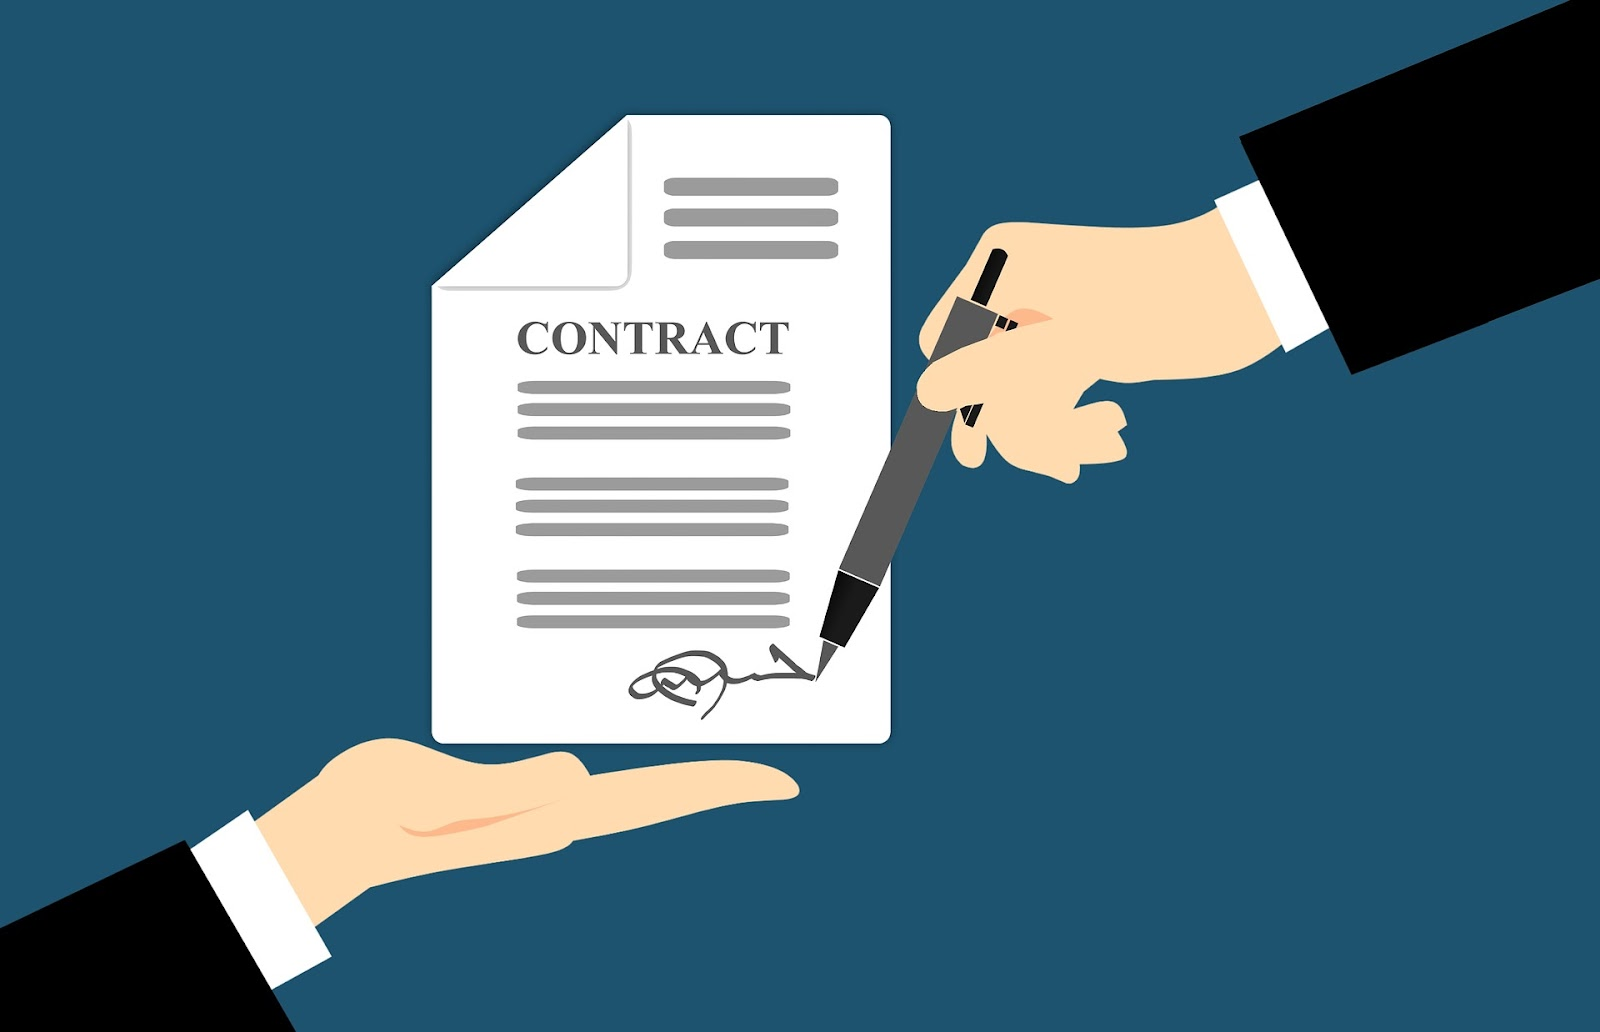 contract with client's signature